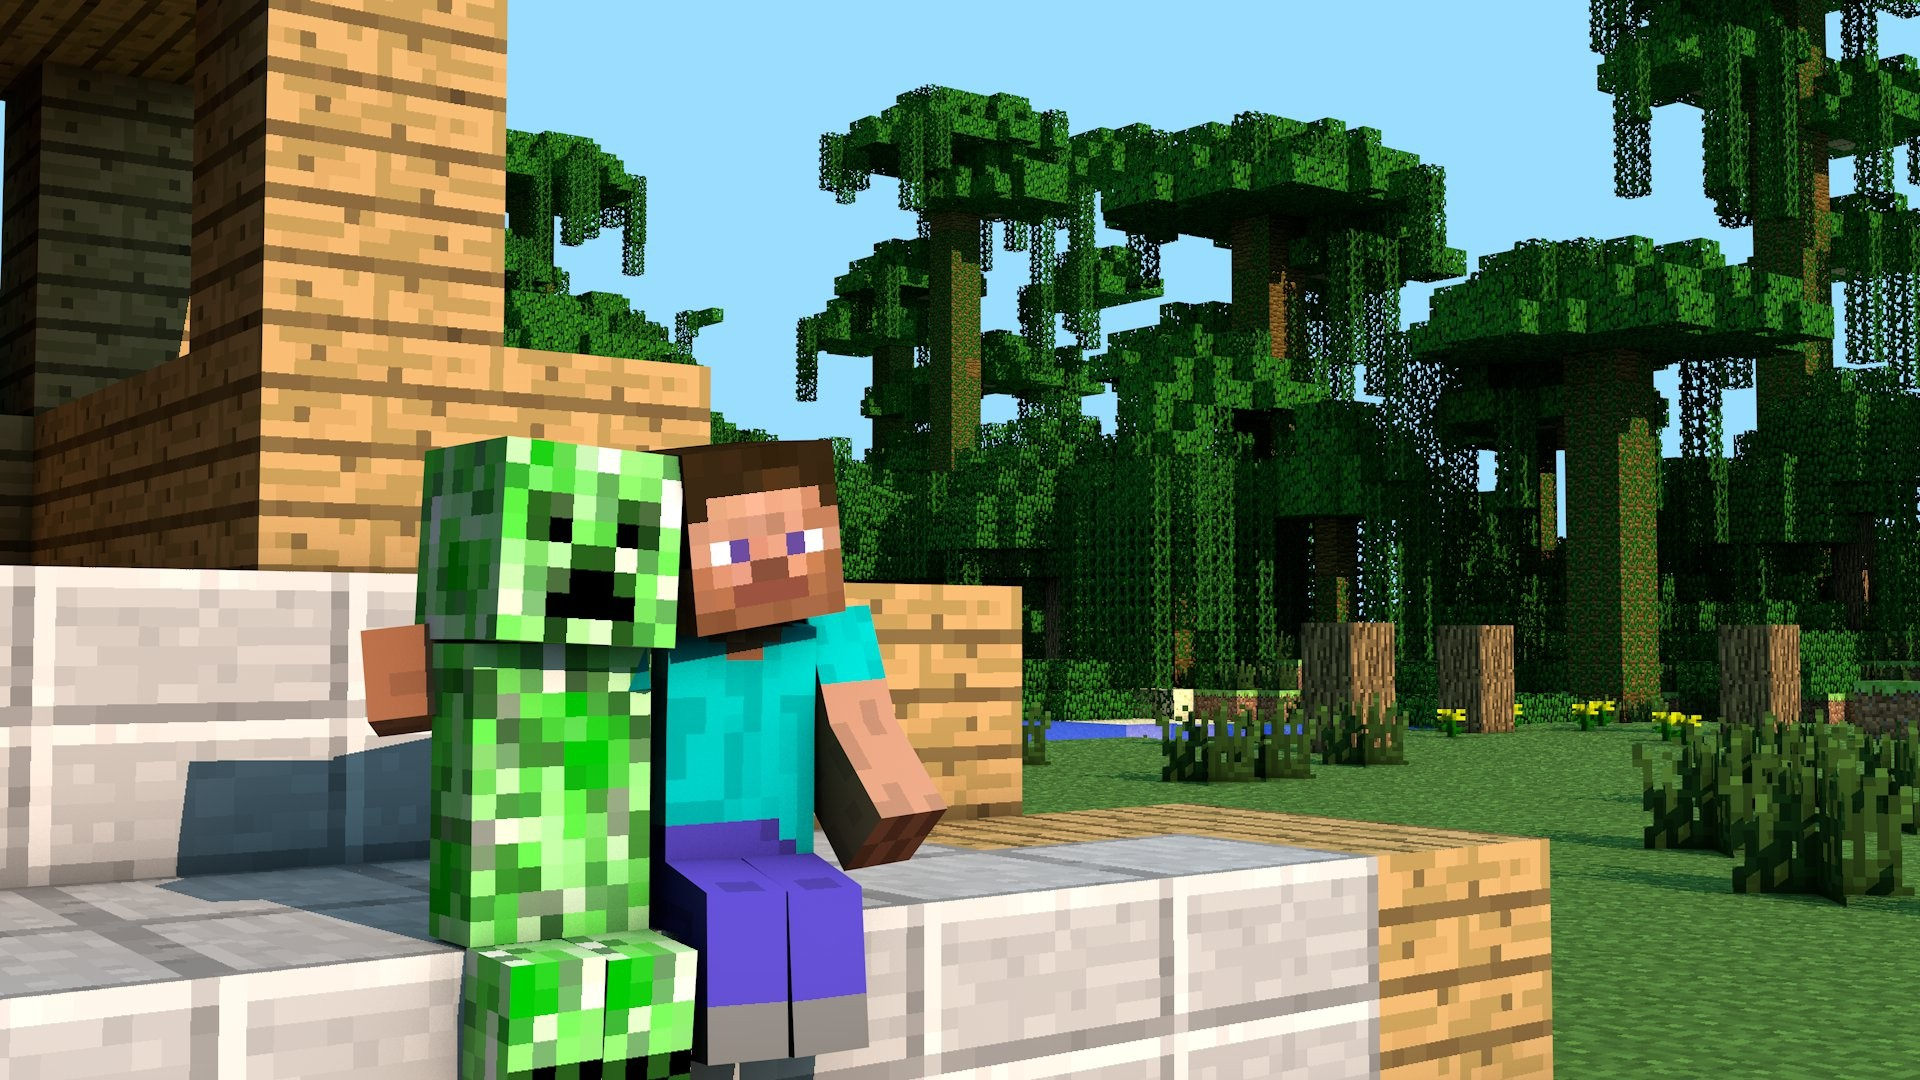 Creeper-Steve-Minecraft-HD-Wallpaper.jpg